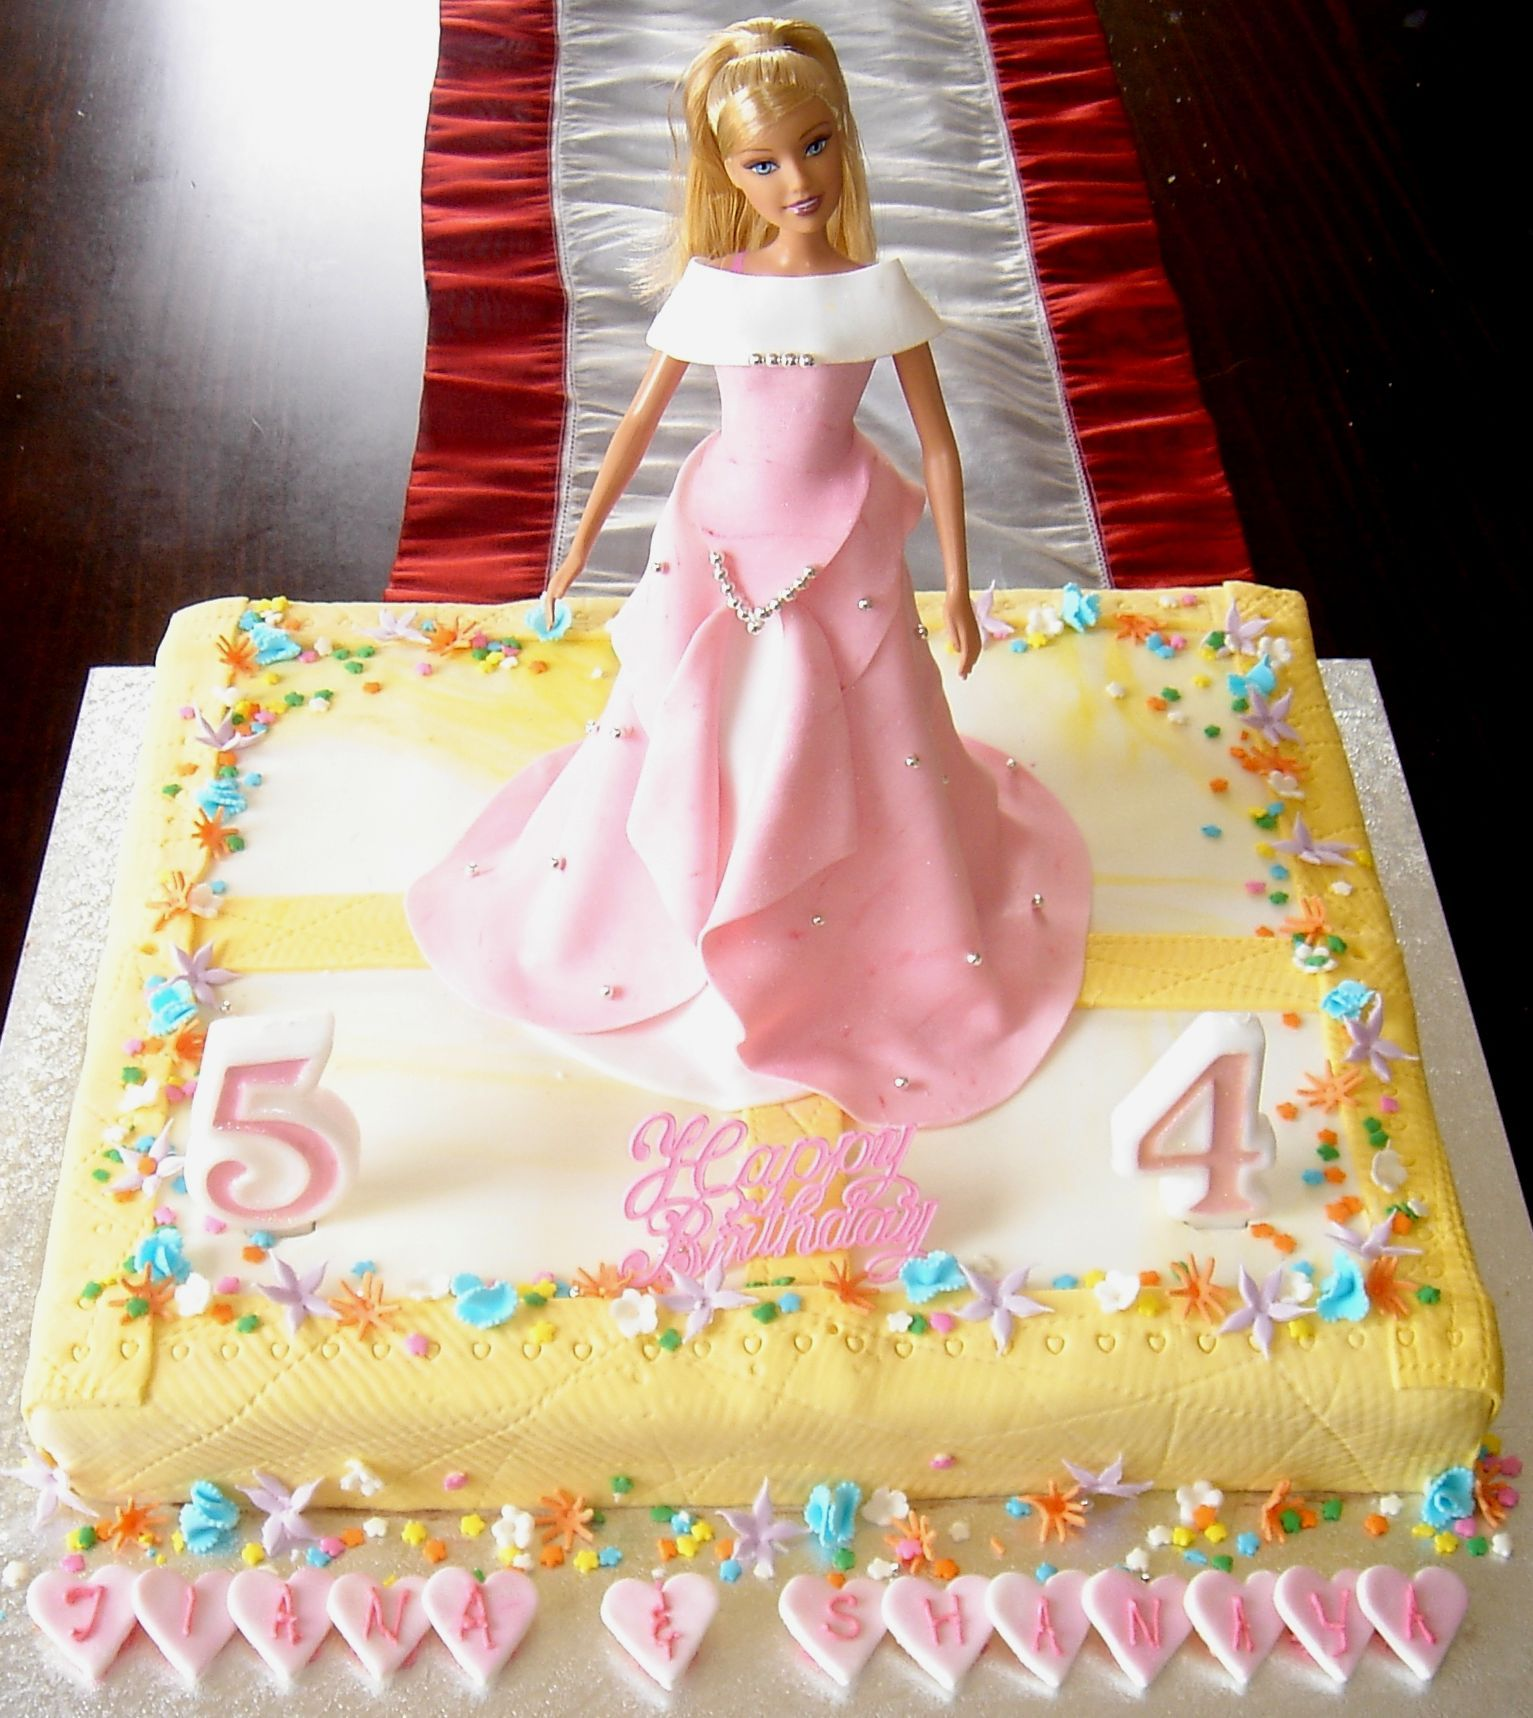 Barbie Sheetcake With Images Barbie Cake Doll Cake Birthday